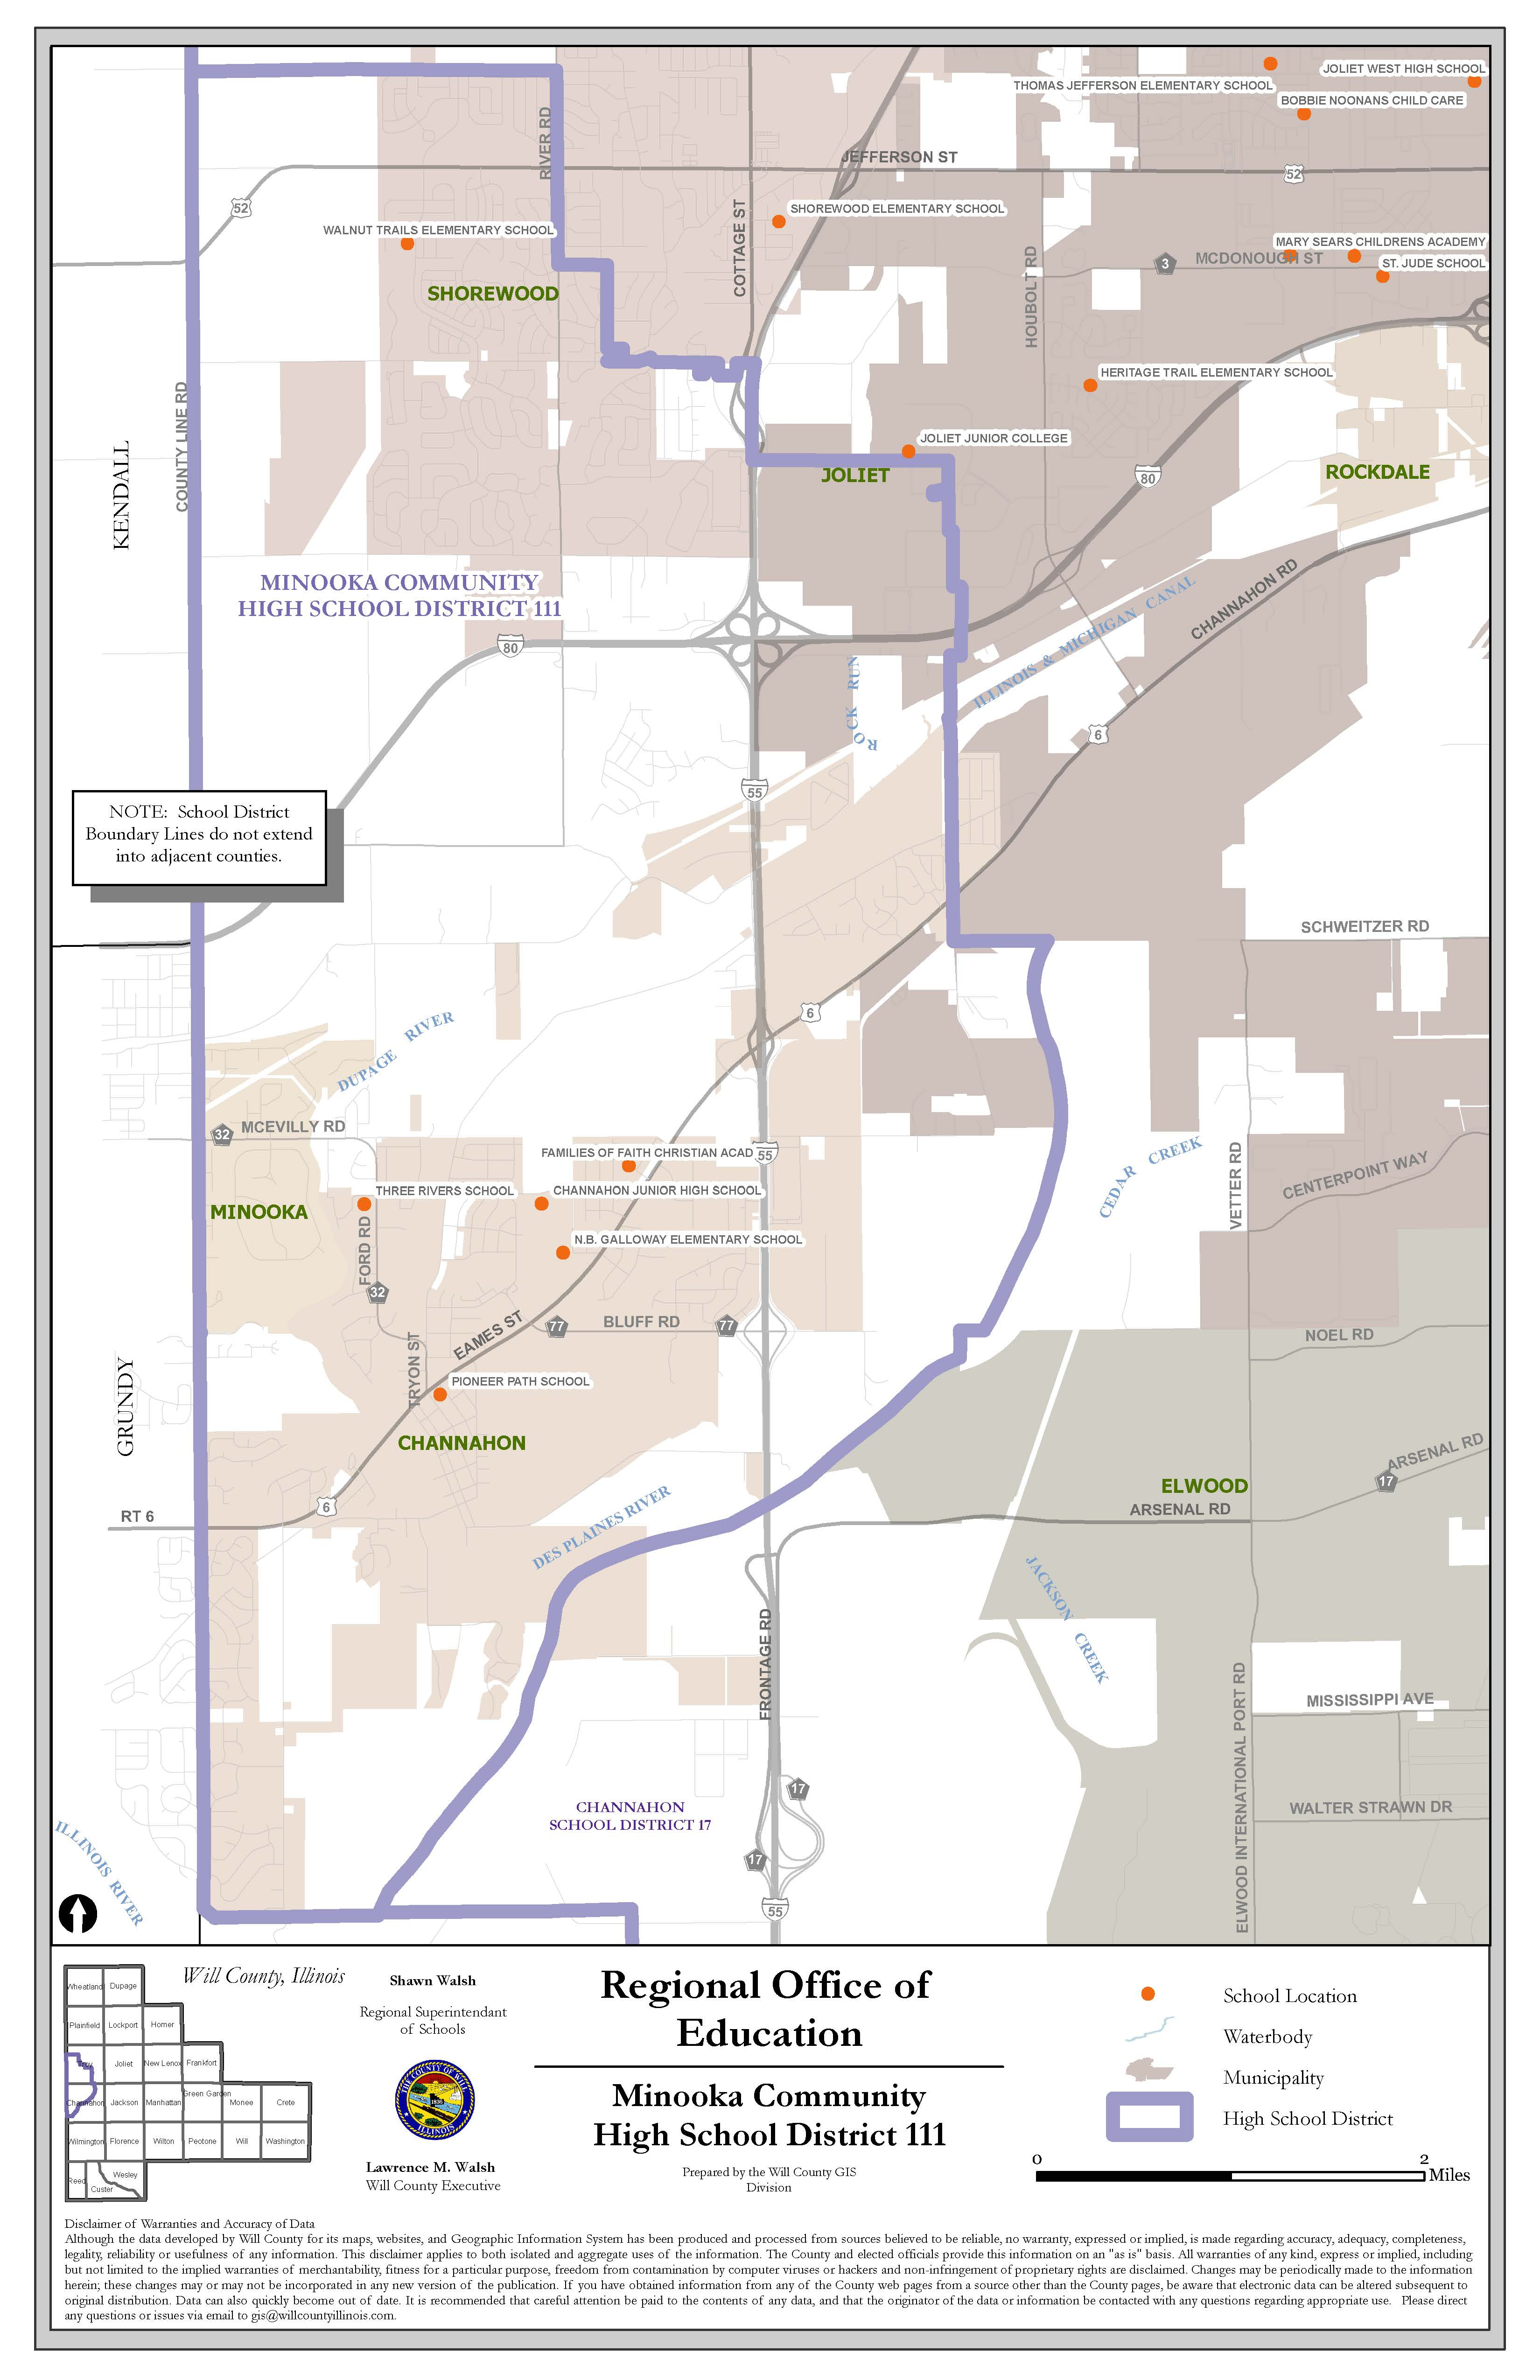 Minooka High School District Map